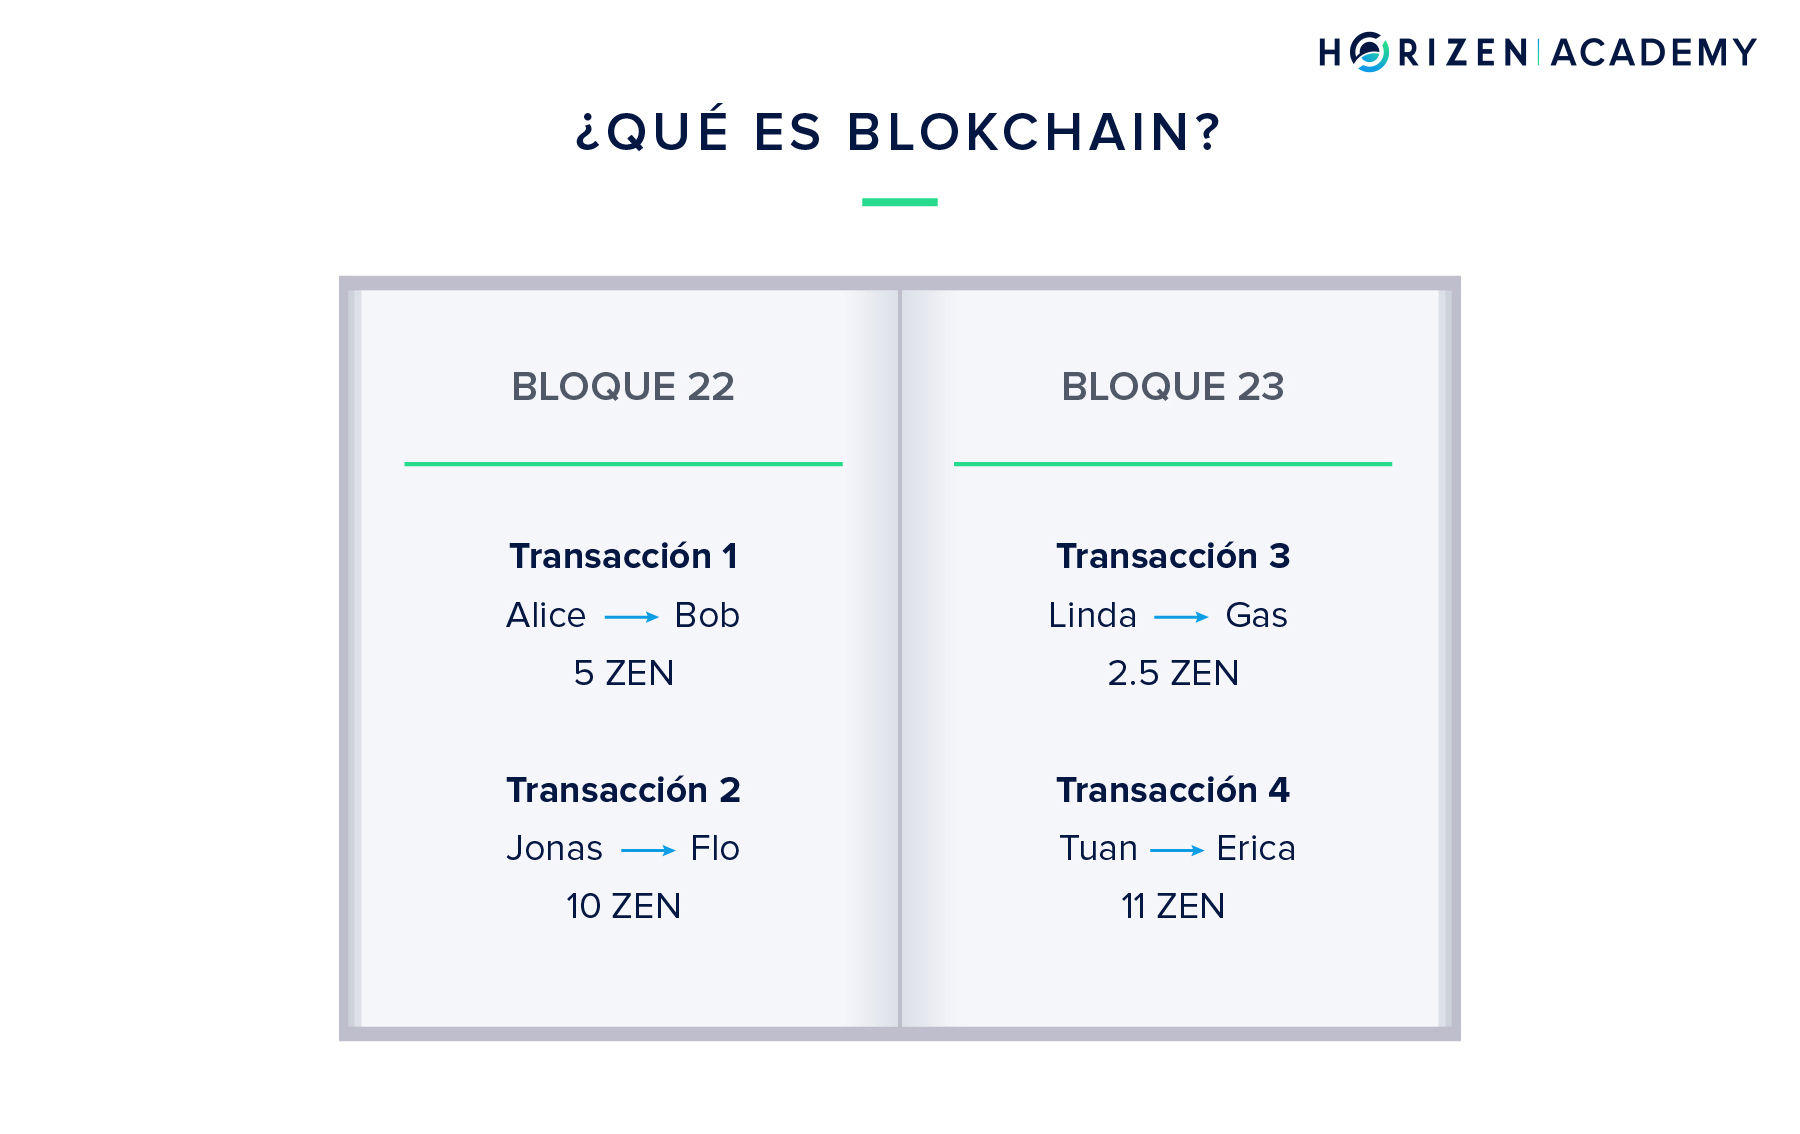 What is a Blockchain in ES